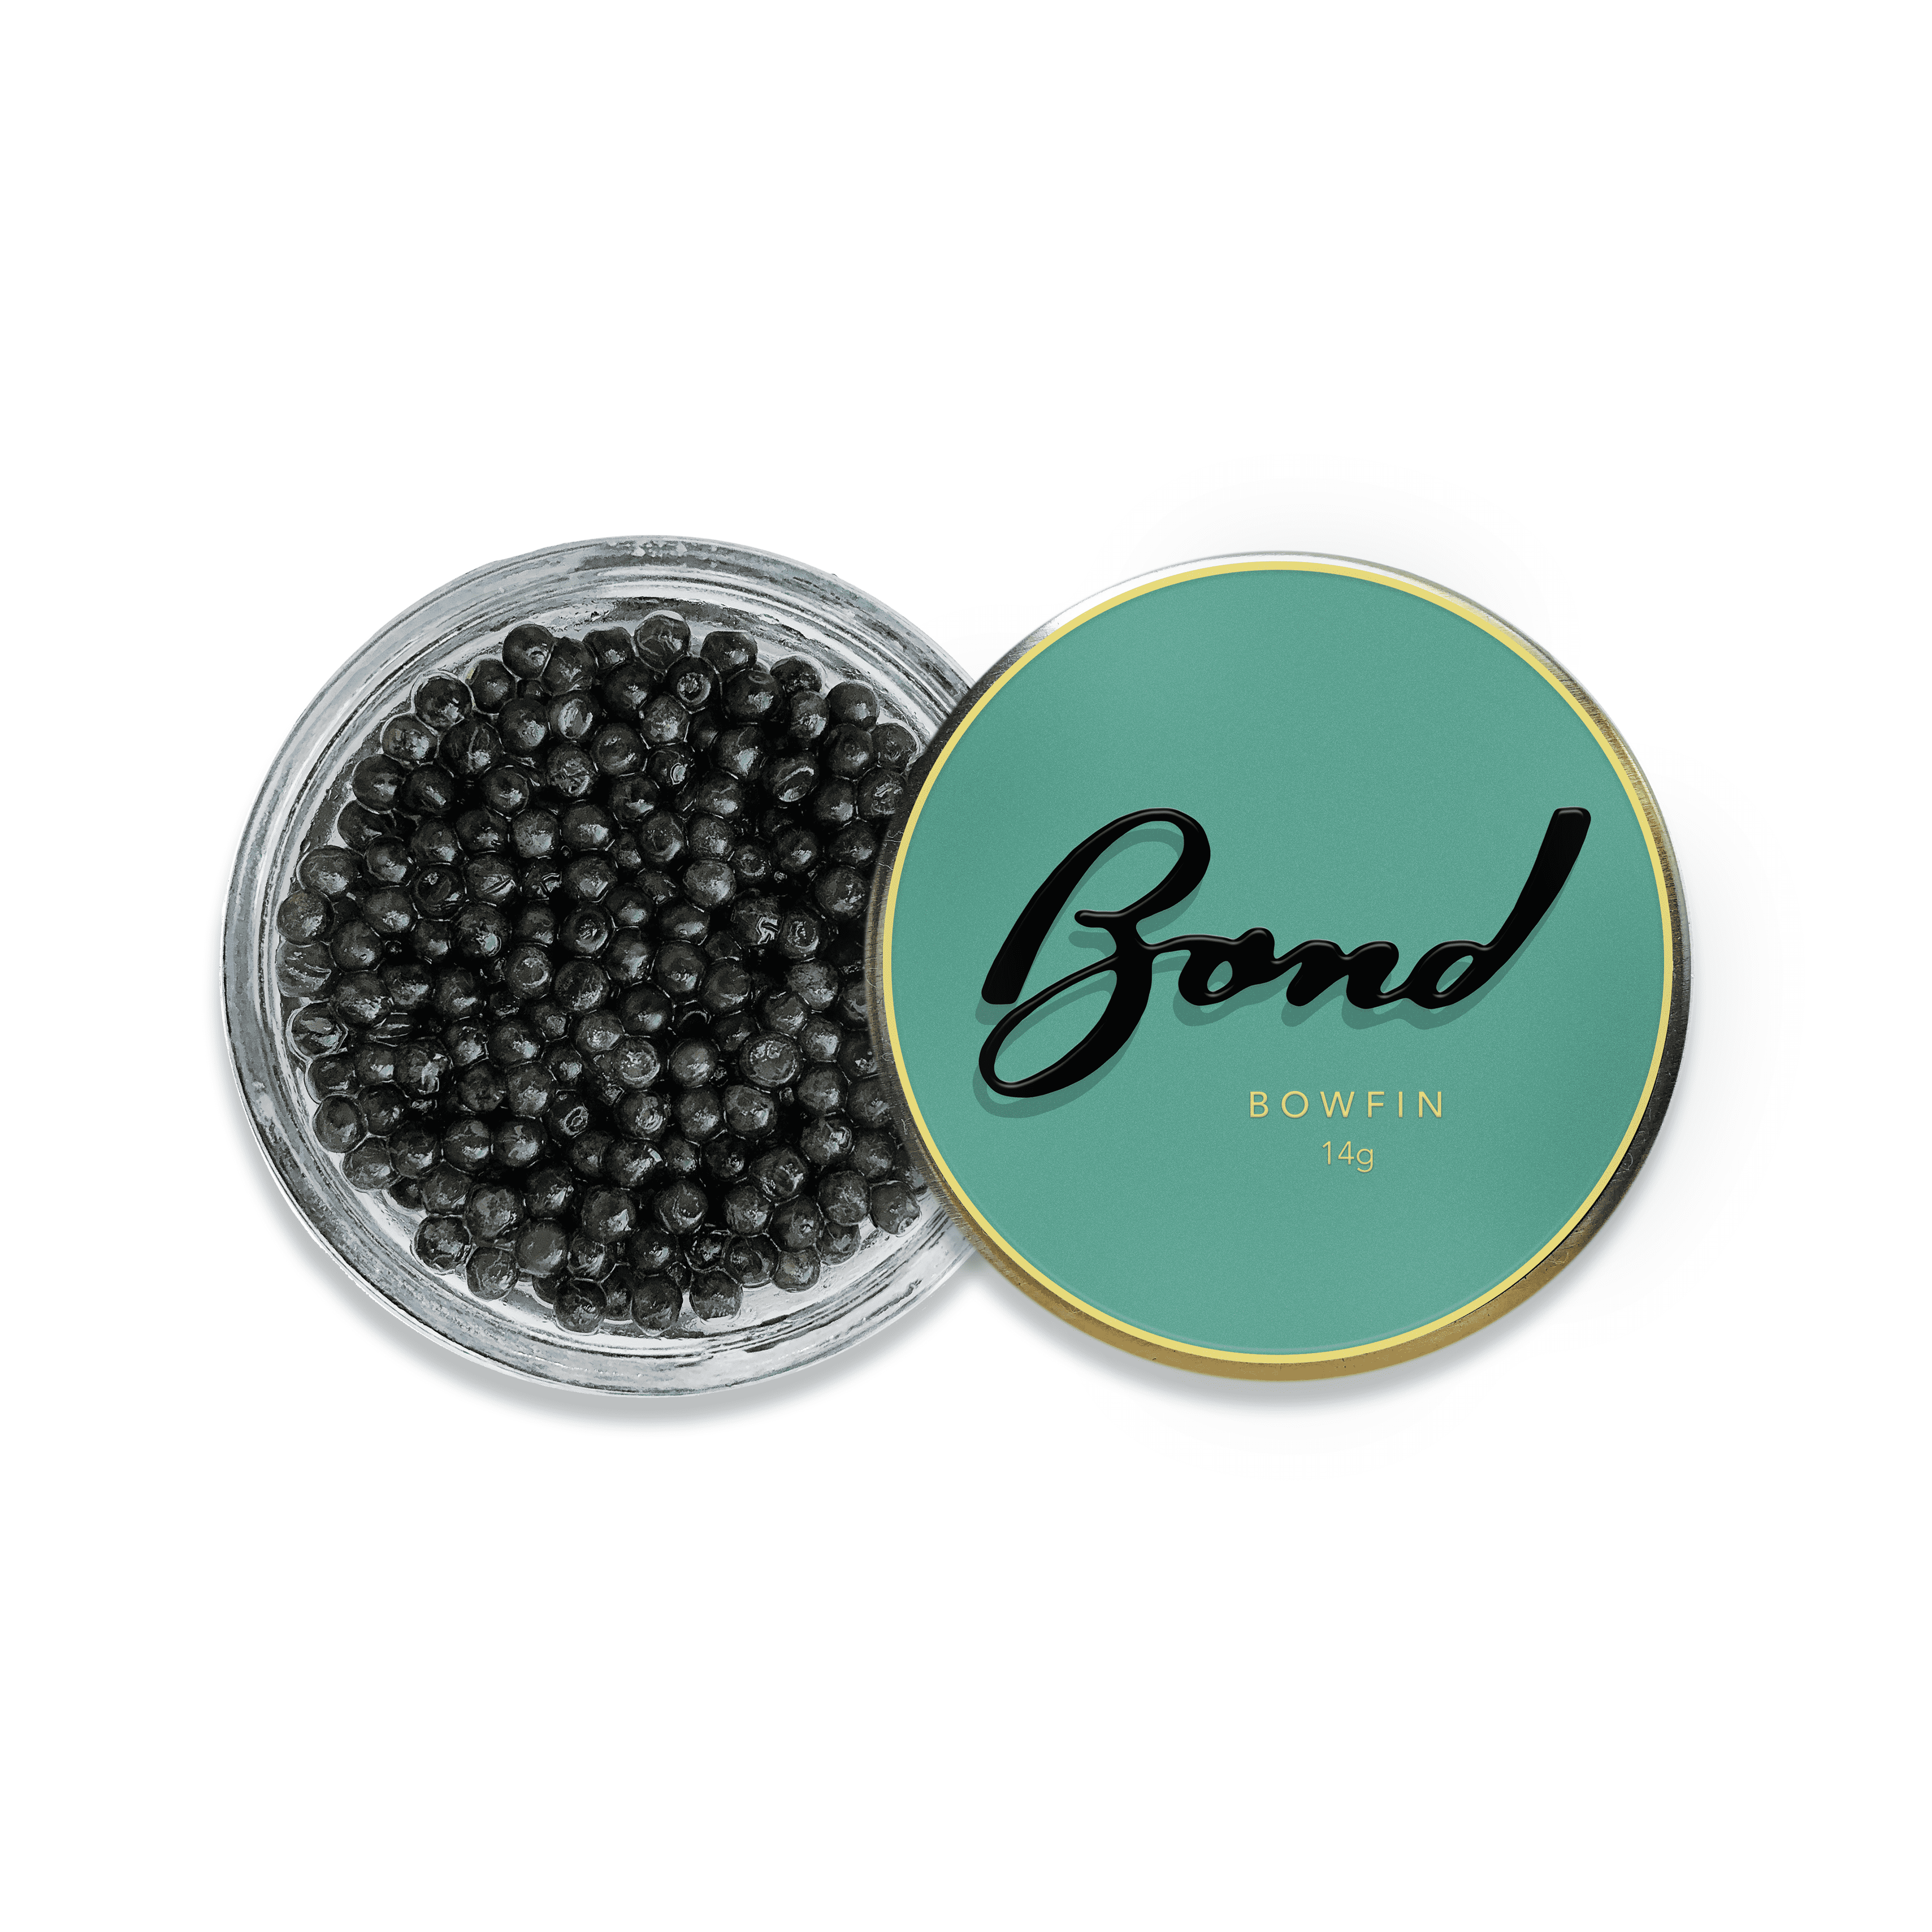 Bond Bowfin Black Caviar